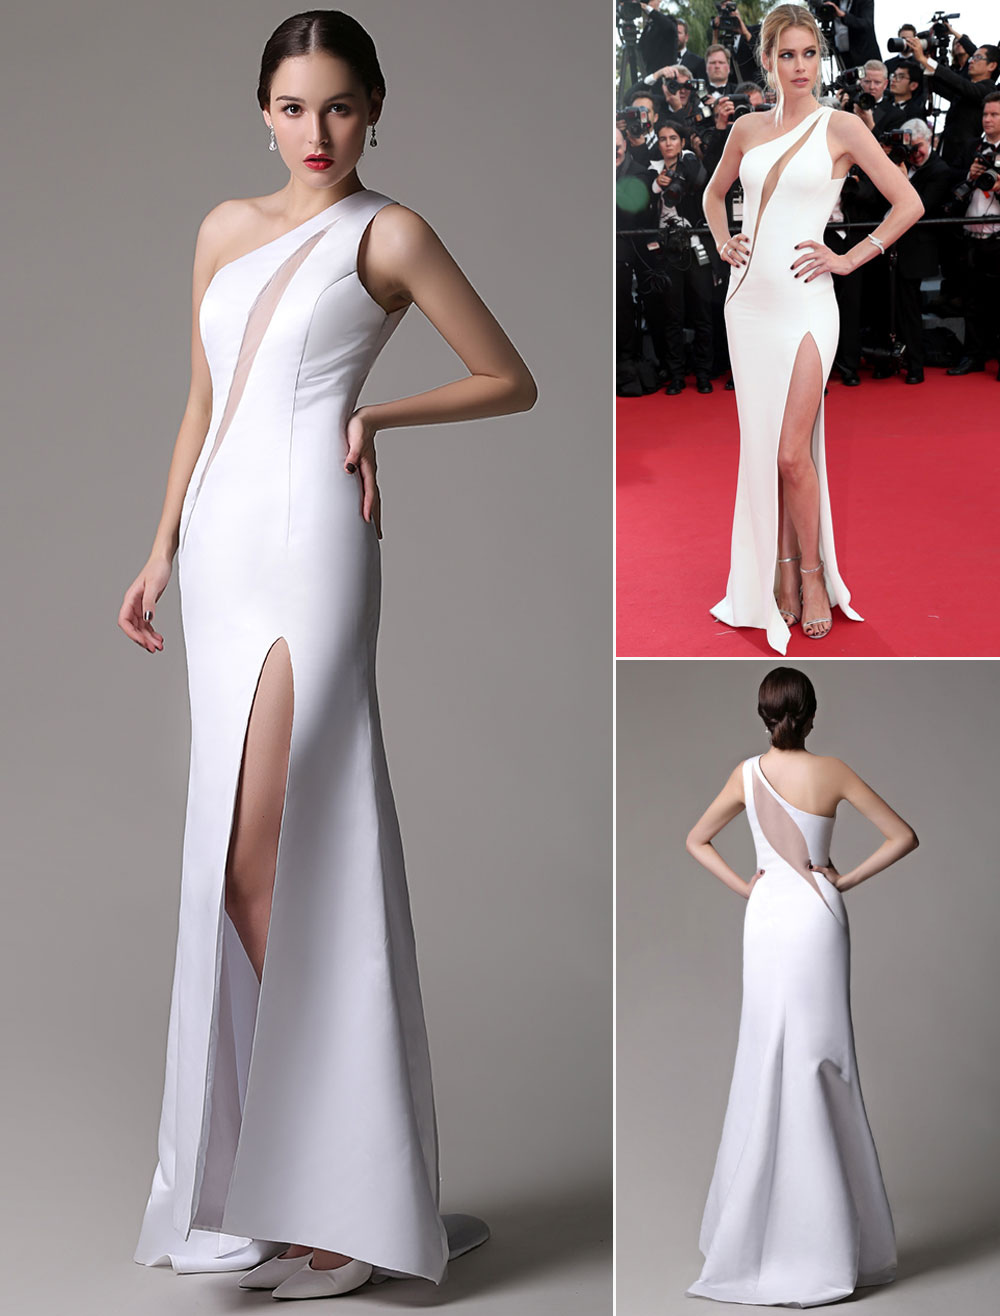 Doutzen Kroes Cannes White Satin Cutout Split Dress